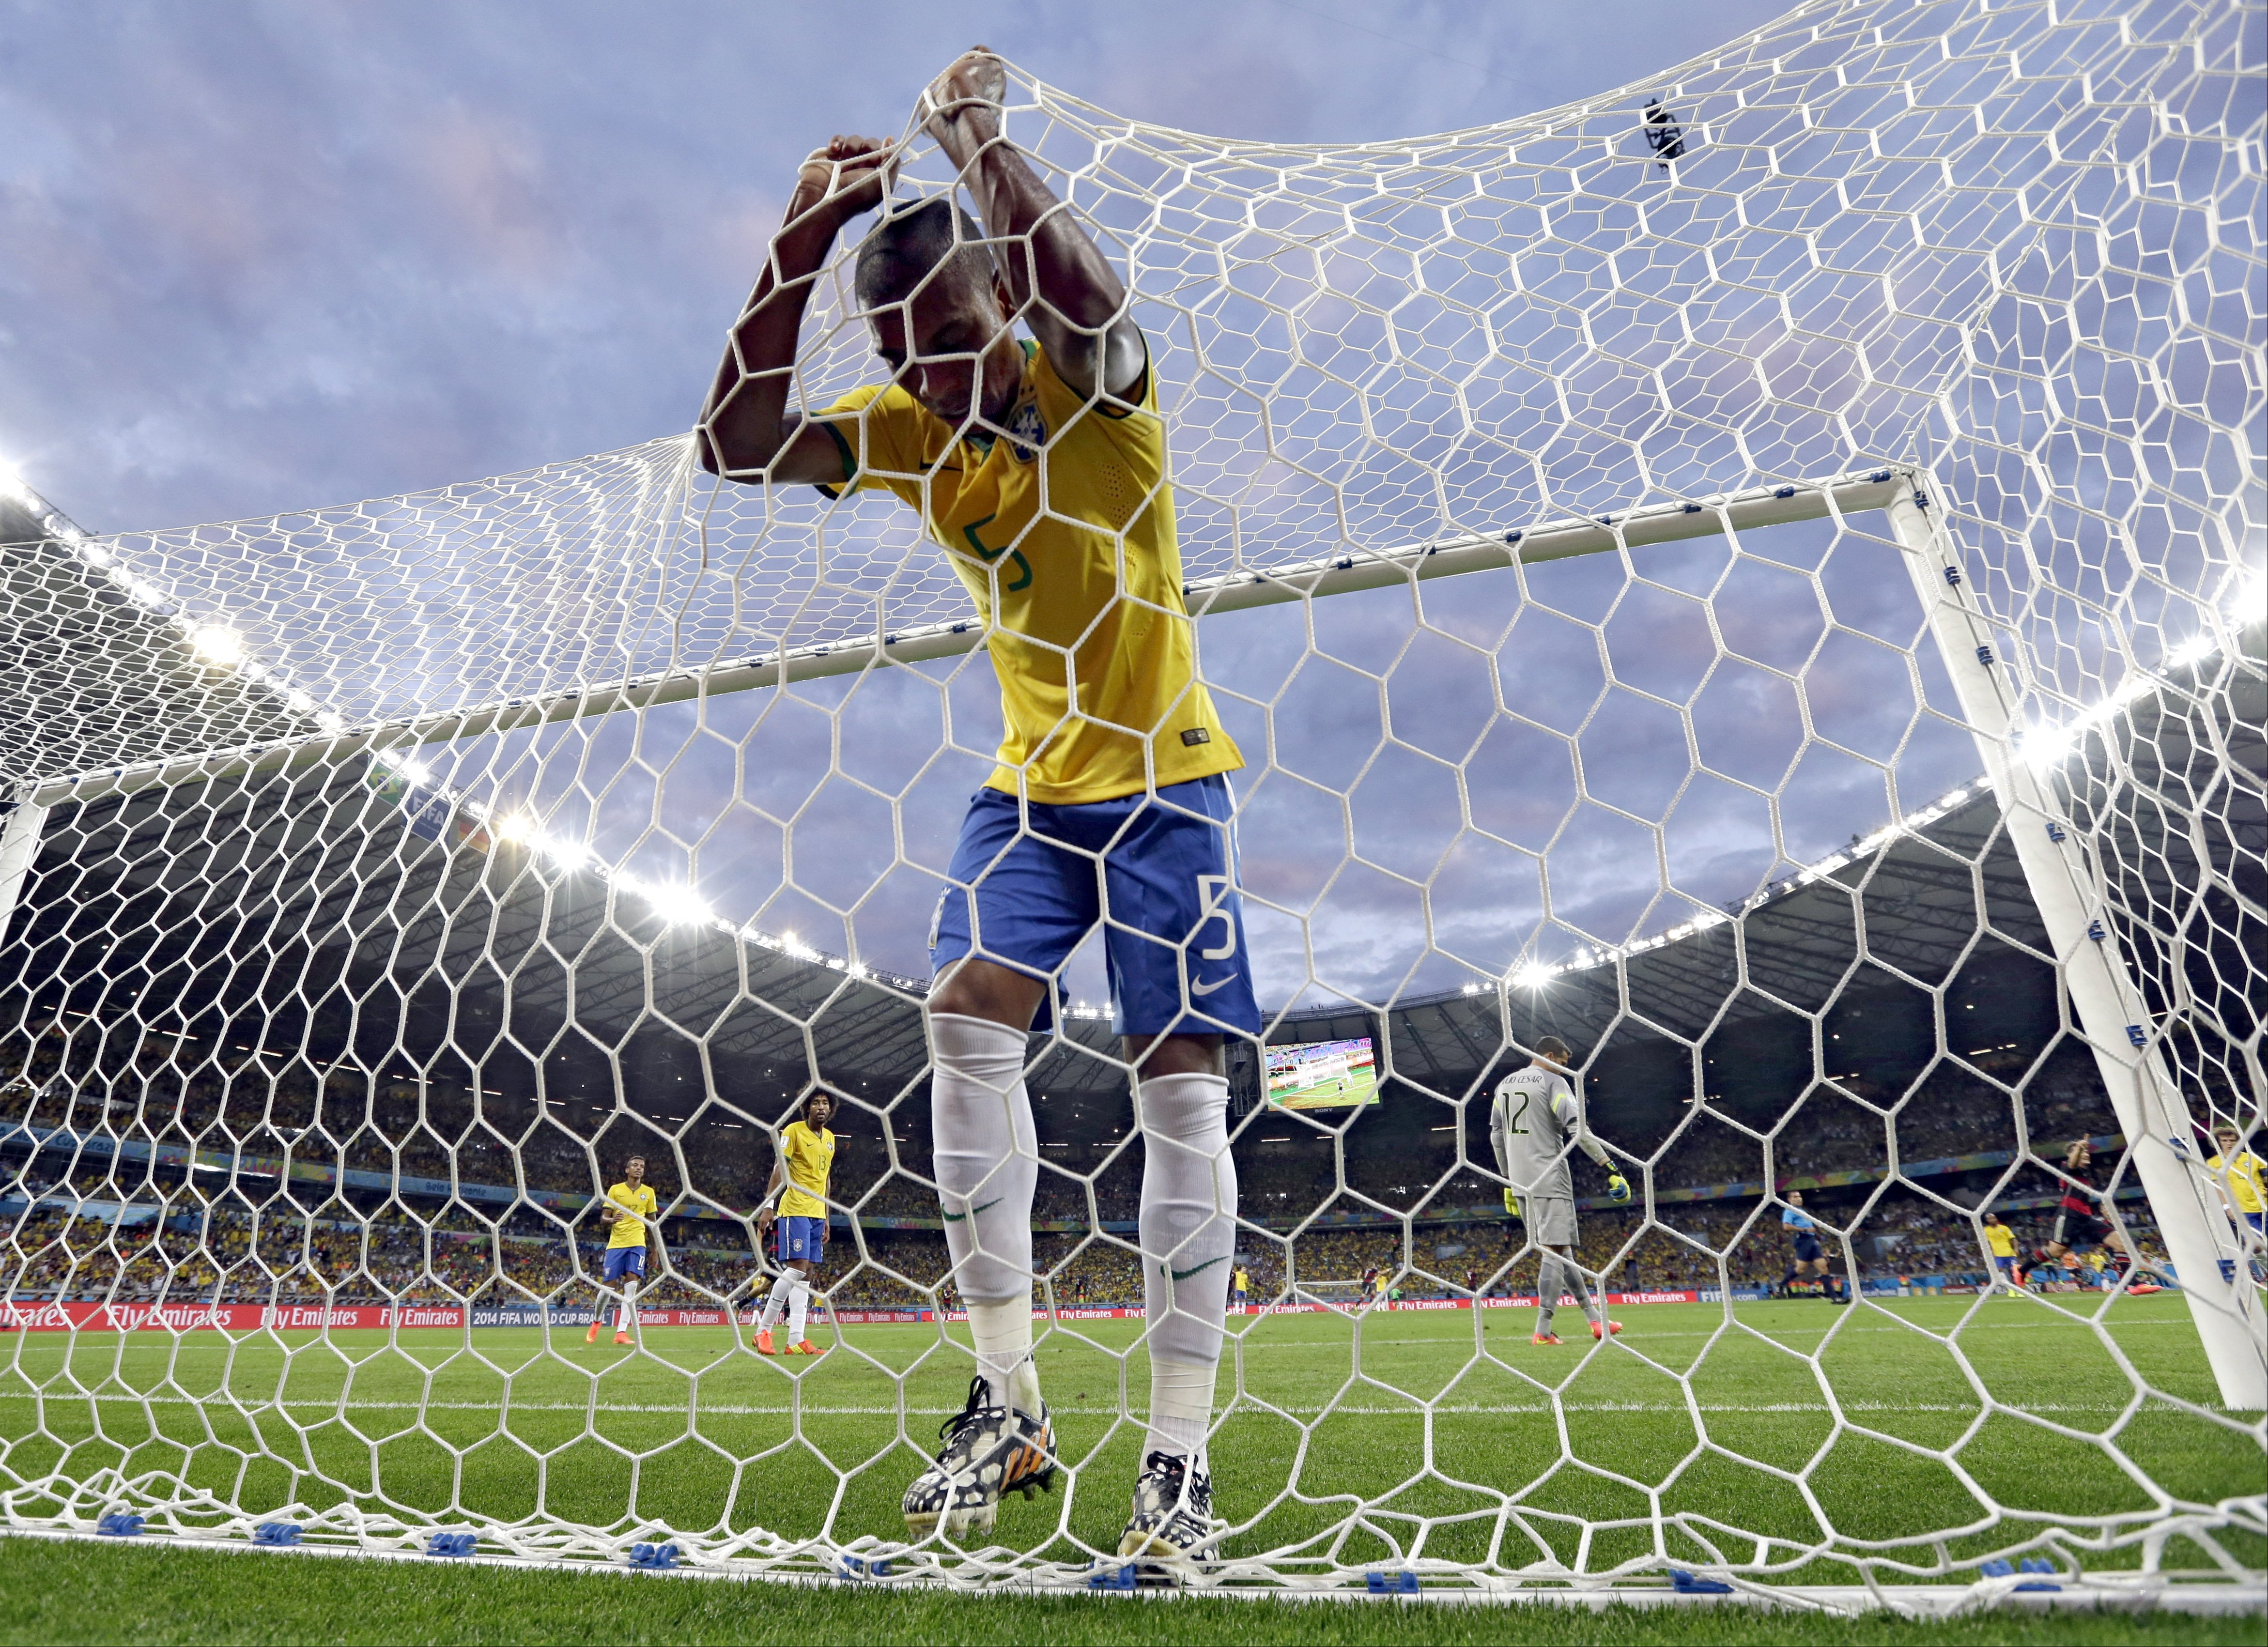 Brazil's Fernandinho reacts after Germany's Toni Kroosduring scored his side's third goal at the Mineirao Stadium in Belo Horizonte, Brazil on July 8, 2014.